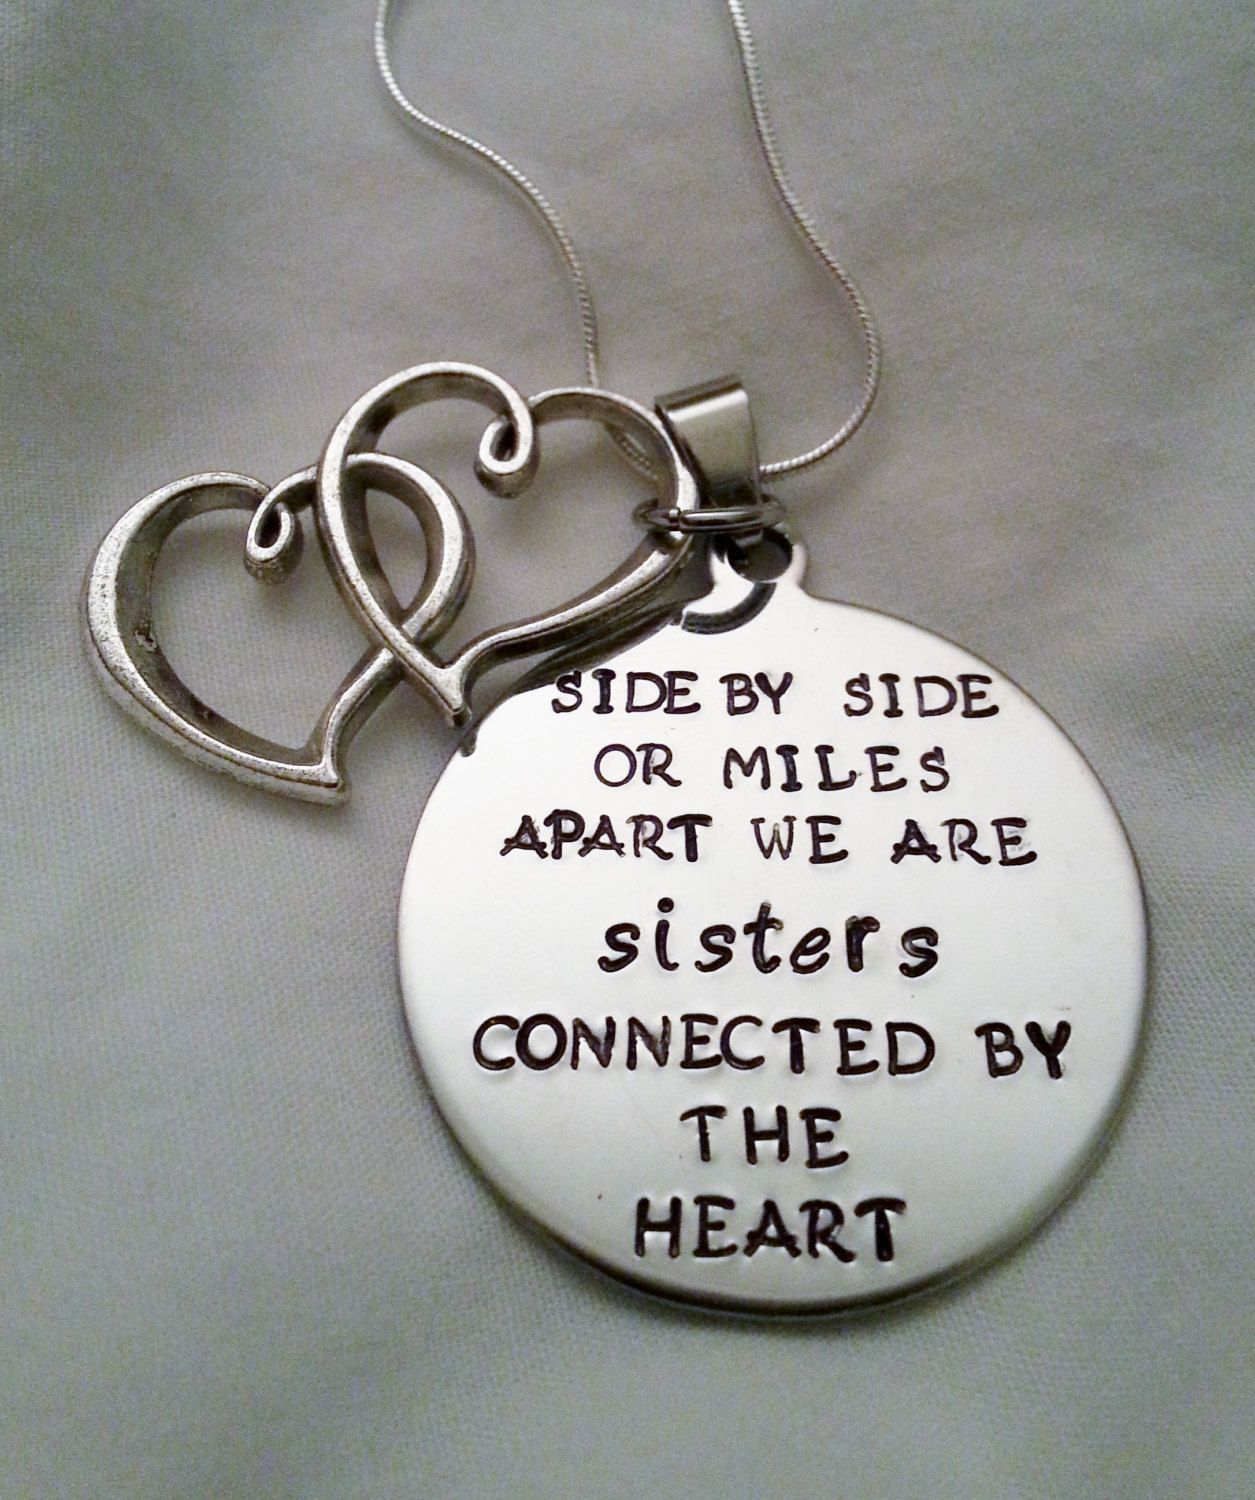 82584f0dceb2 Cute Sisters Quote - Side by Side or Miles Apart We Are Sisters ...